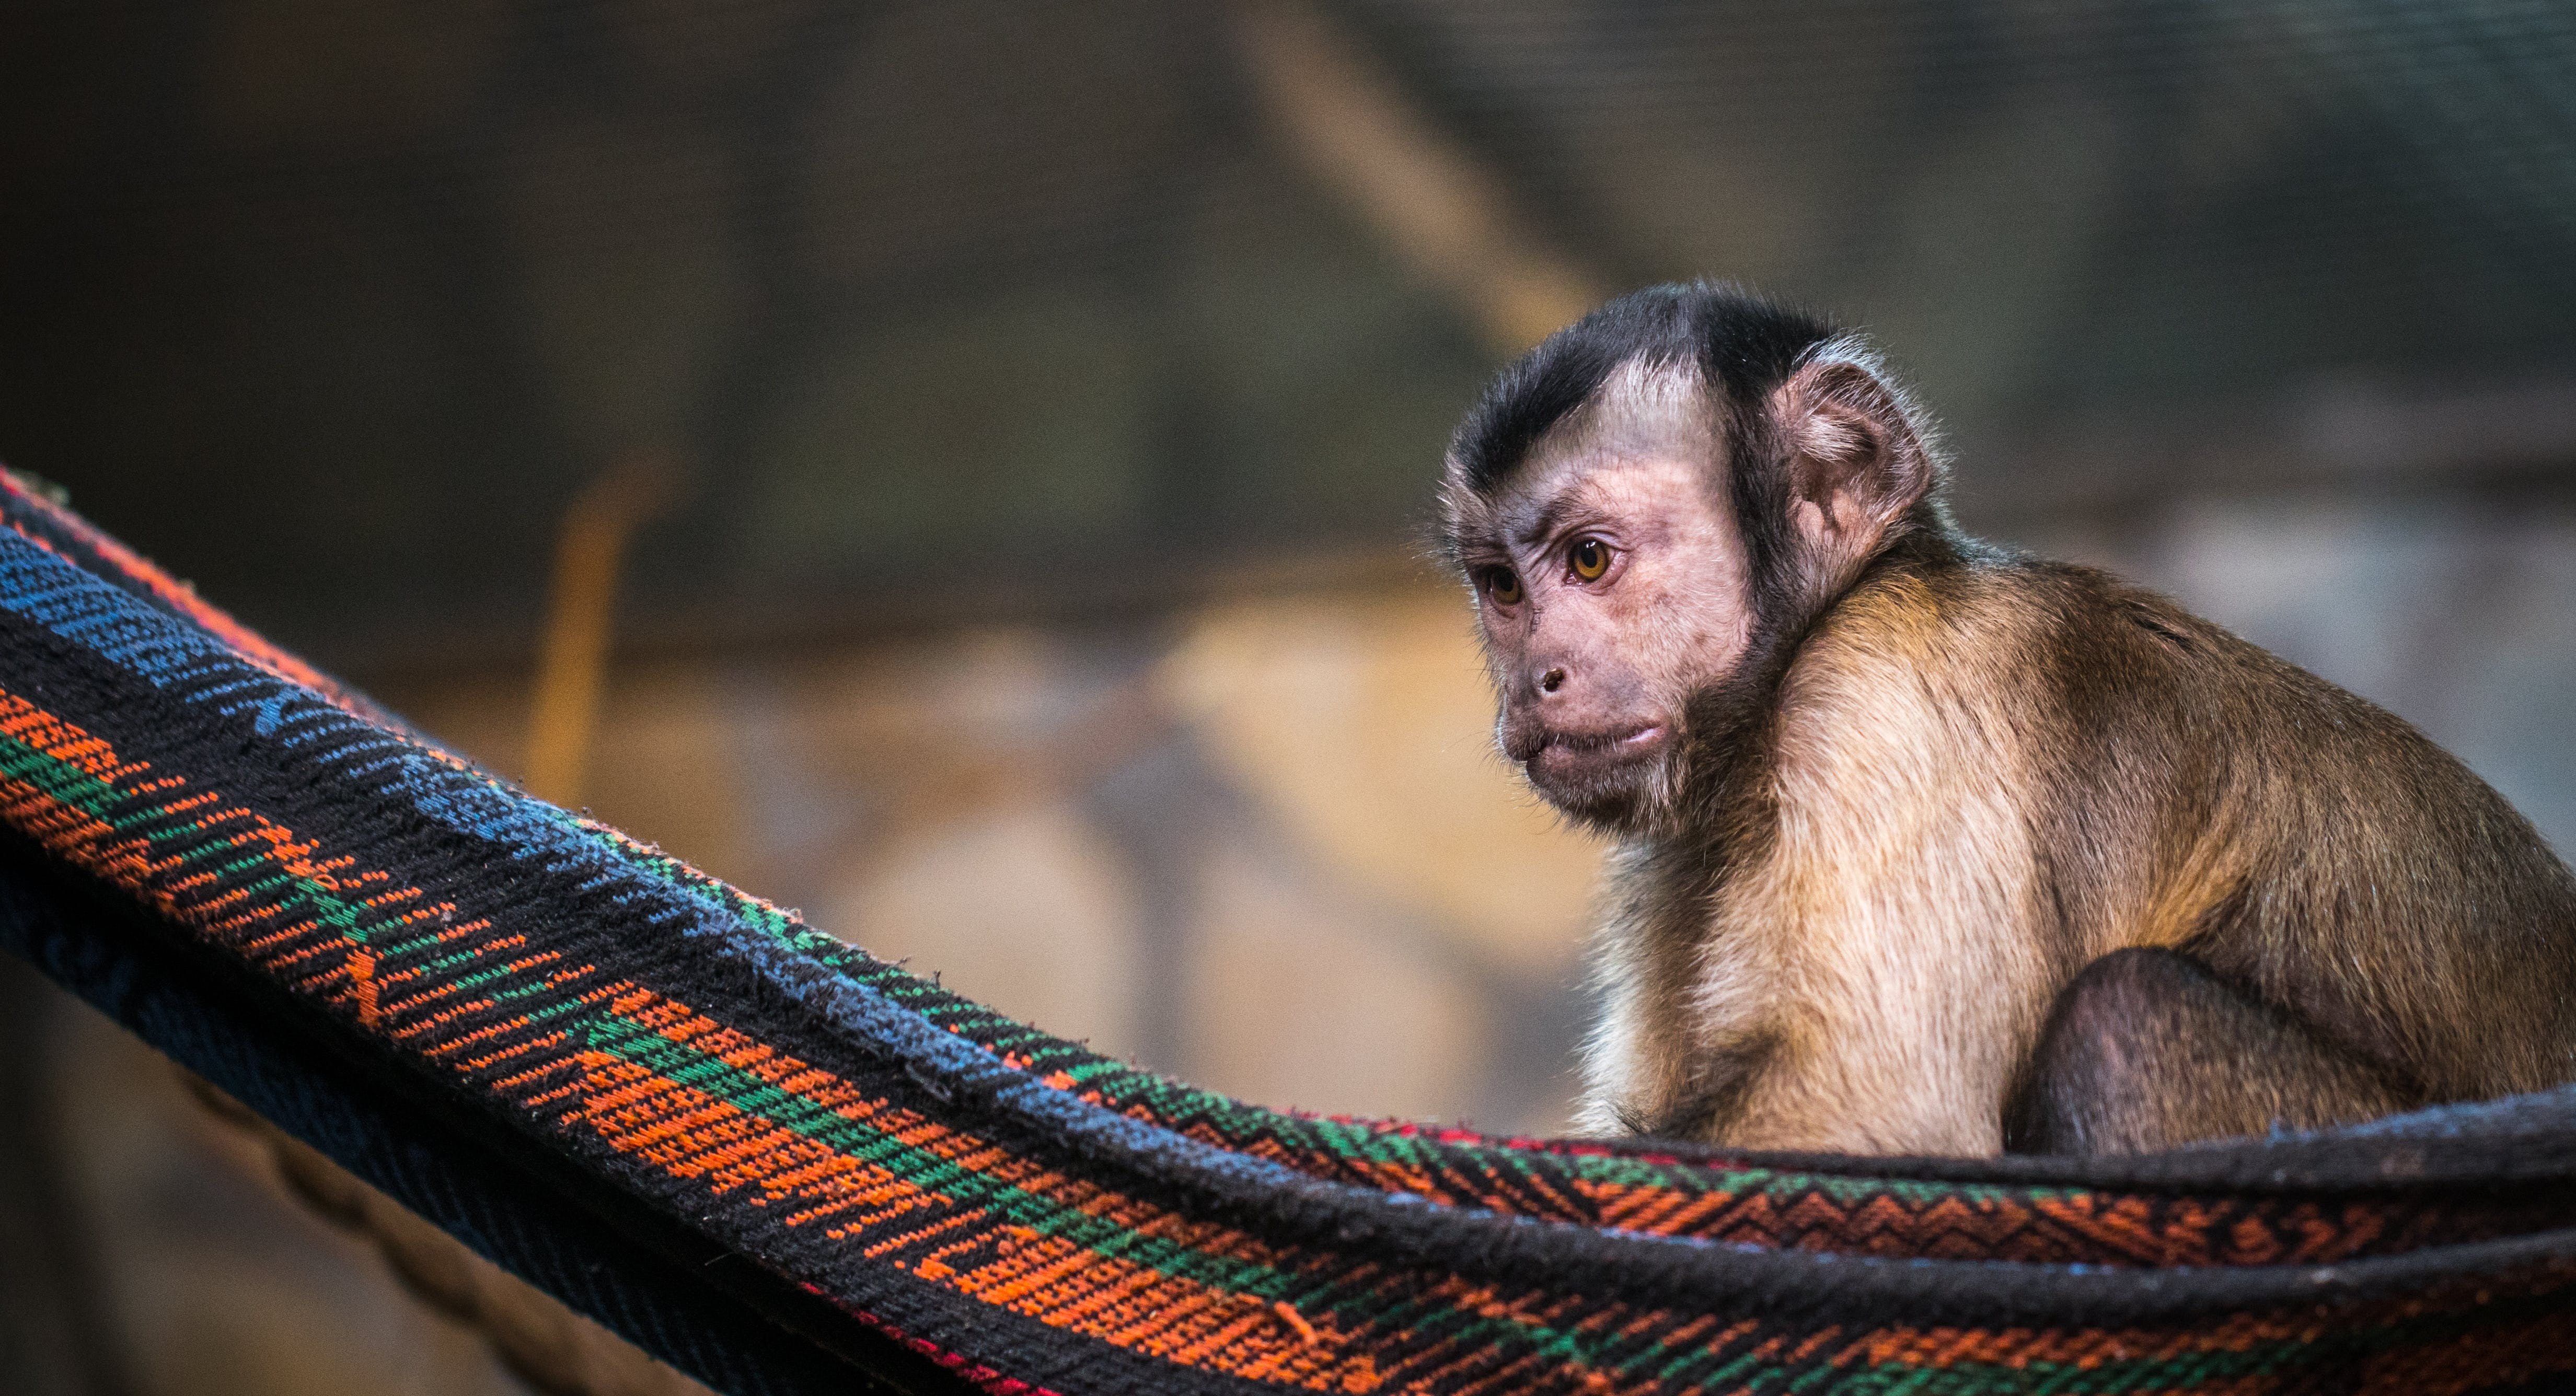 Brown Monkey on Red and Black Hammock